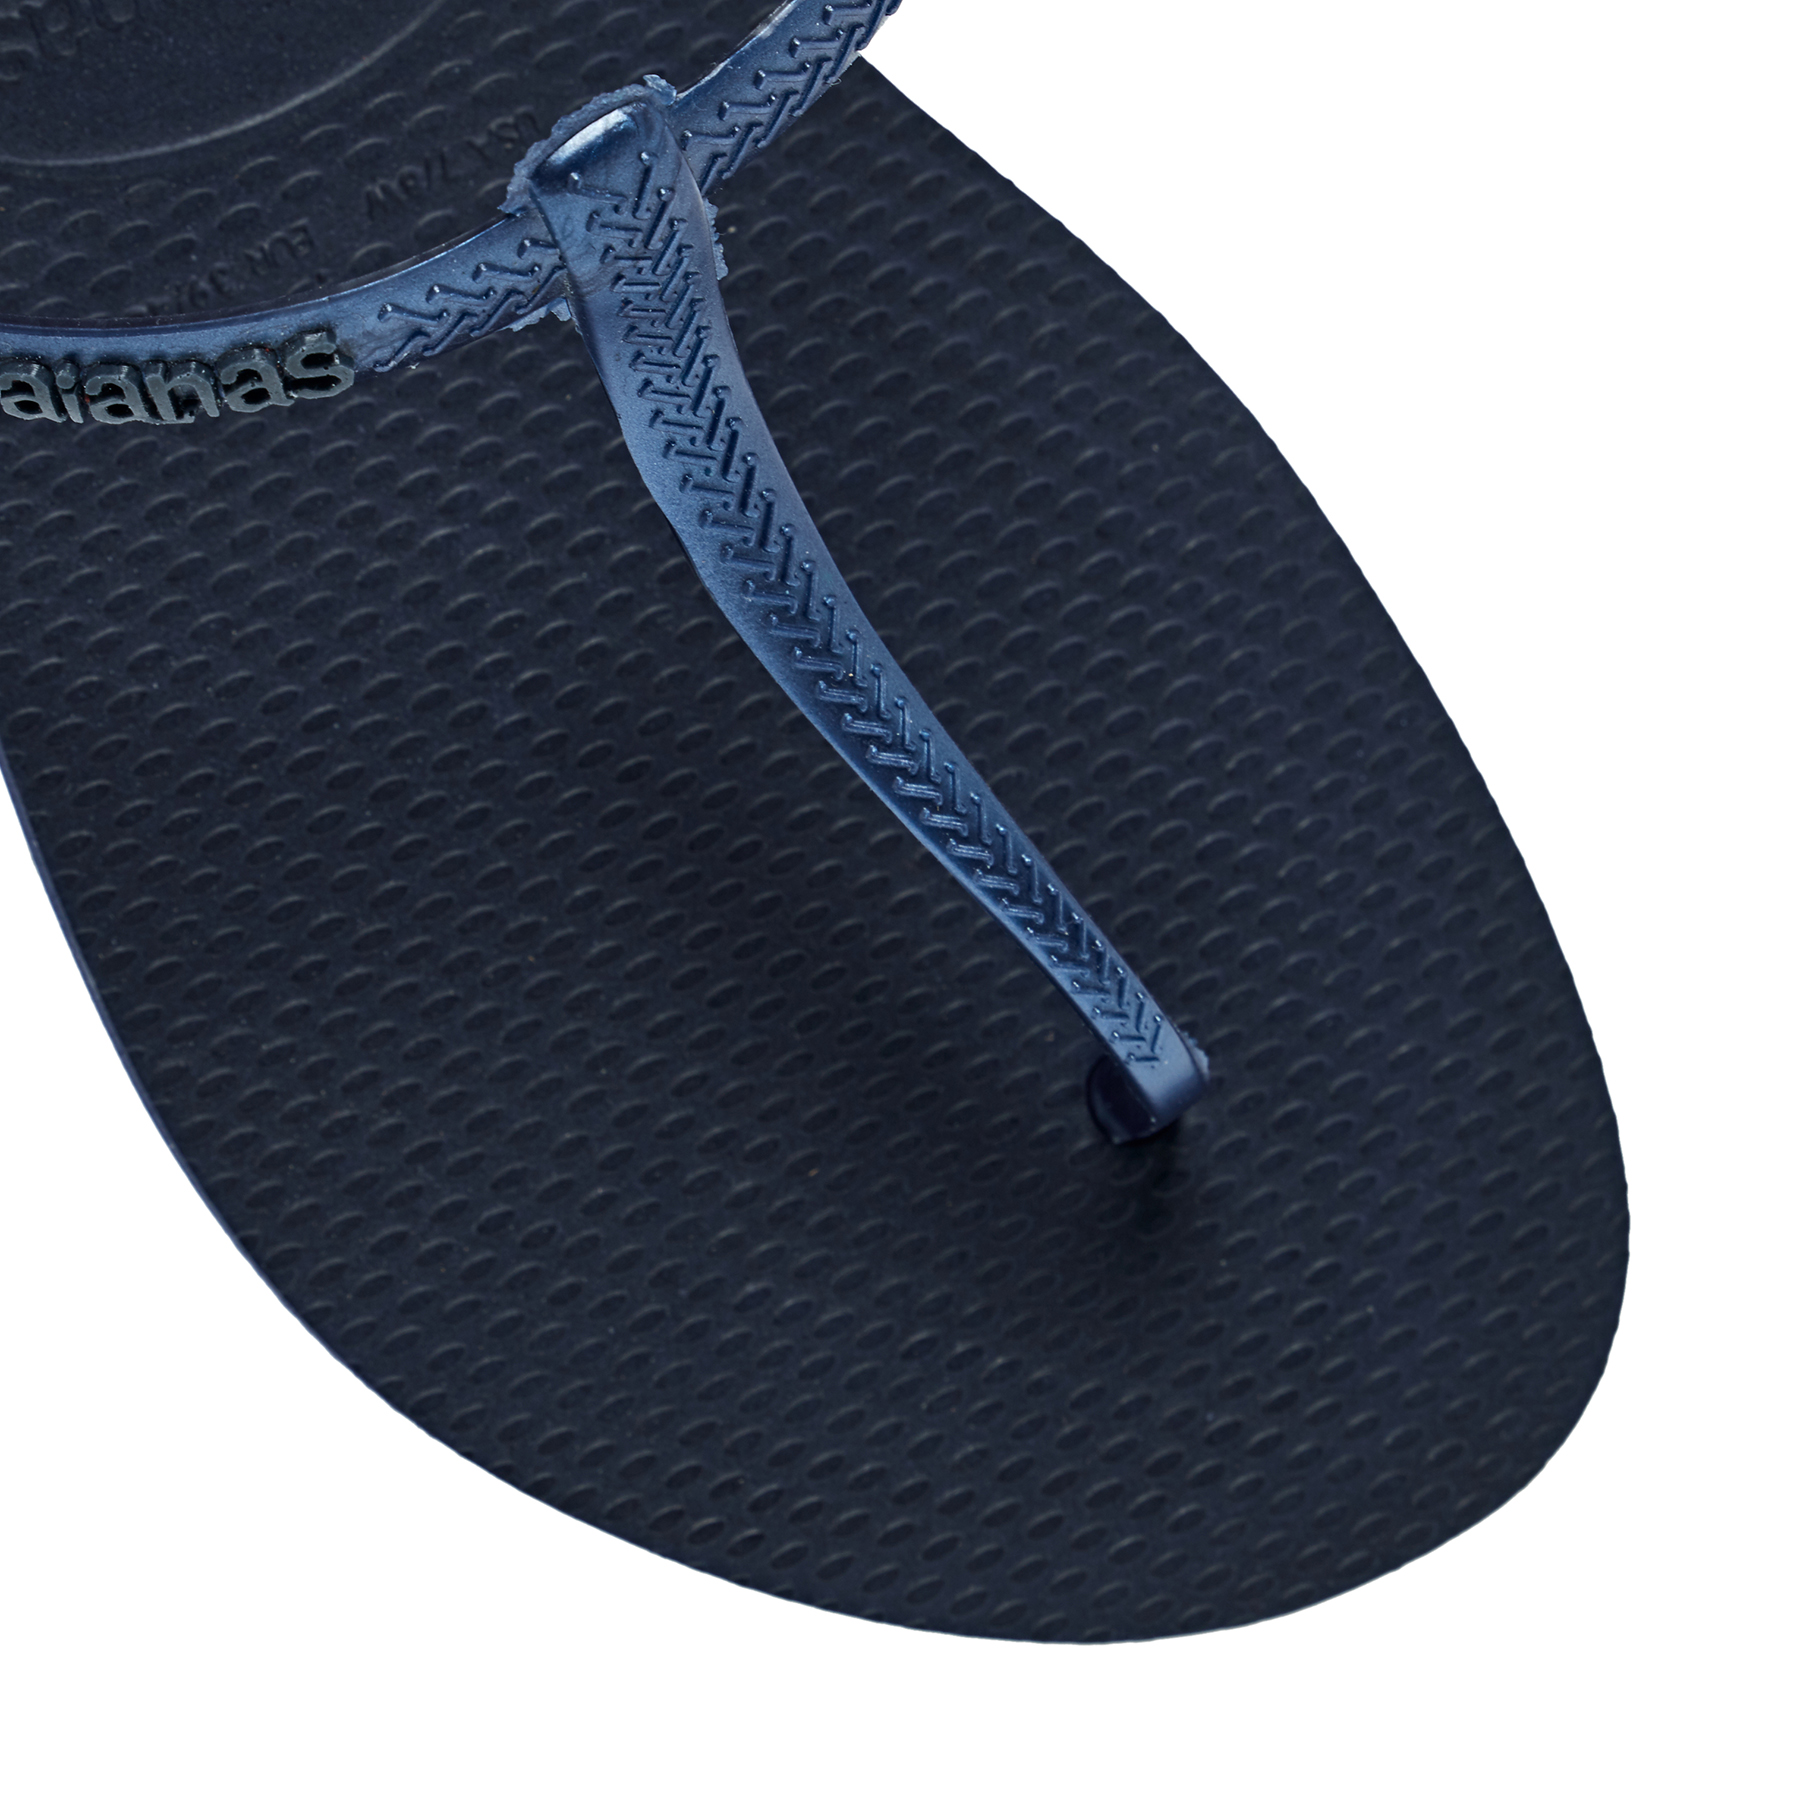 Havaianas Freedom Womens Sandals | Free Delivery* on All Orders